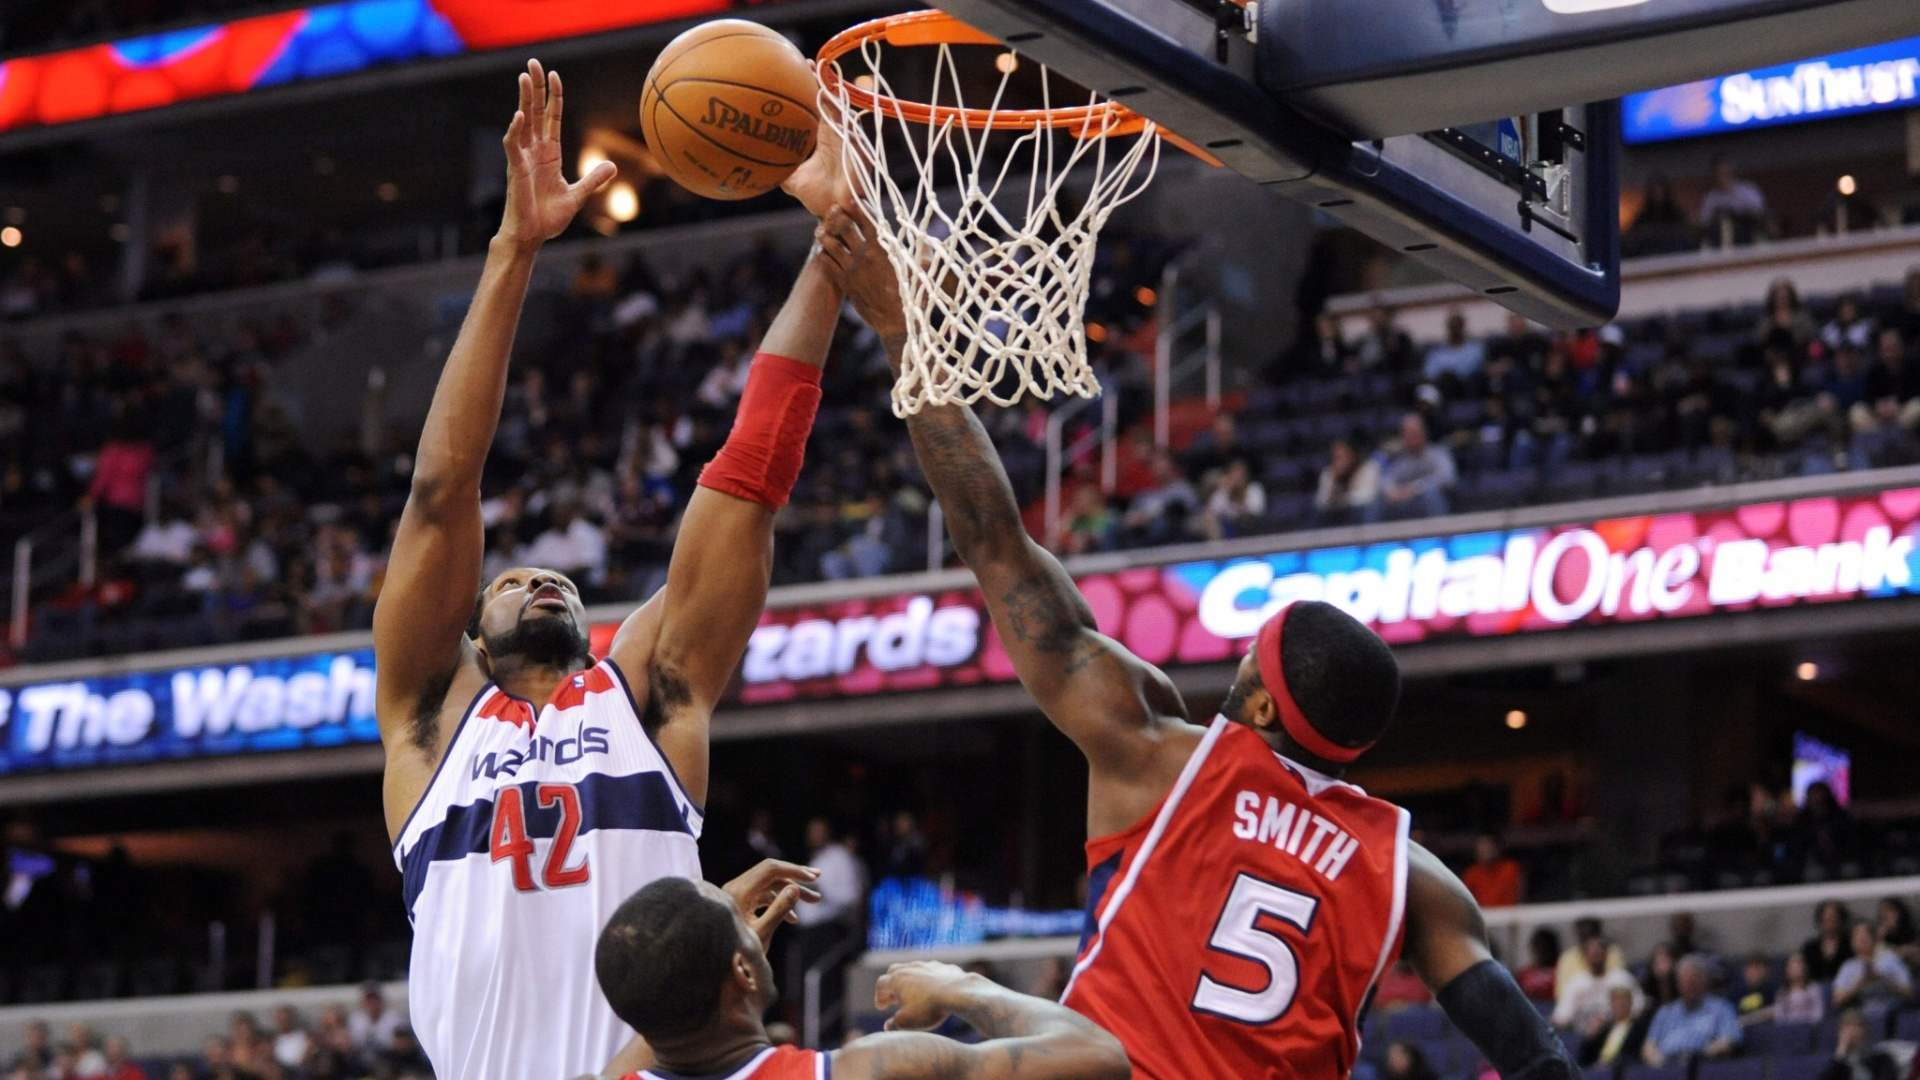 O brasileiro Nenê, do Washington Wizards, vence duelo pelo rebote com Josh Smith, do Atlanta Hawks